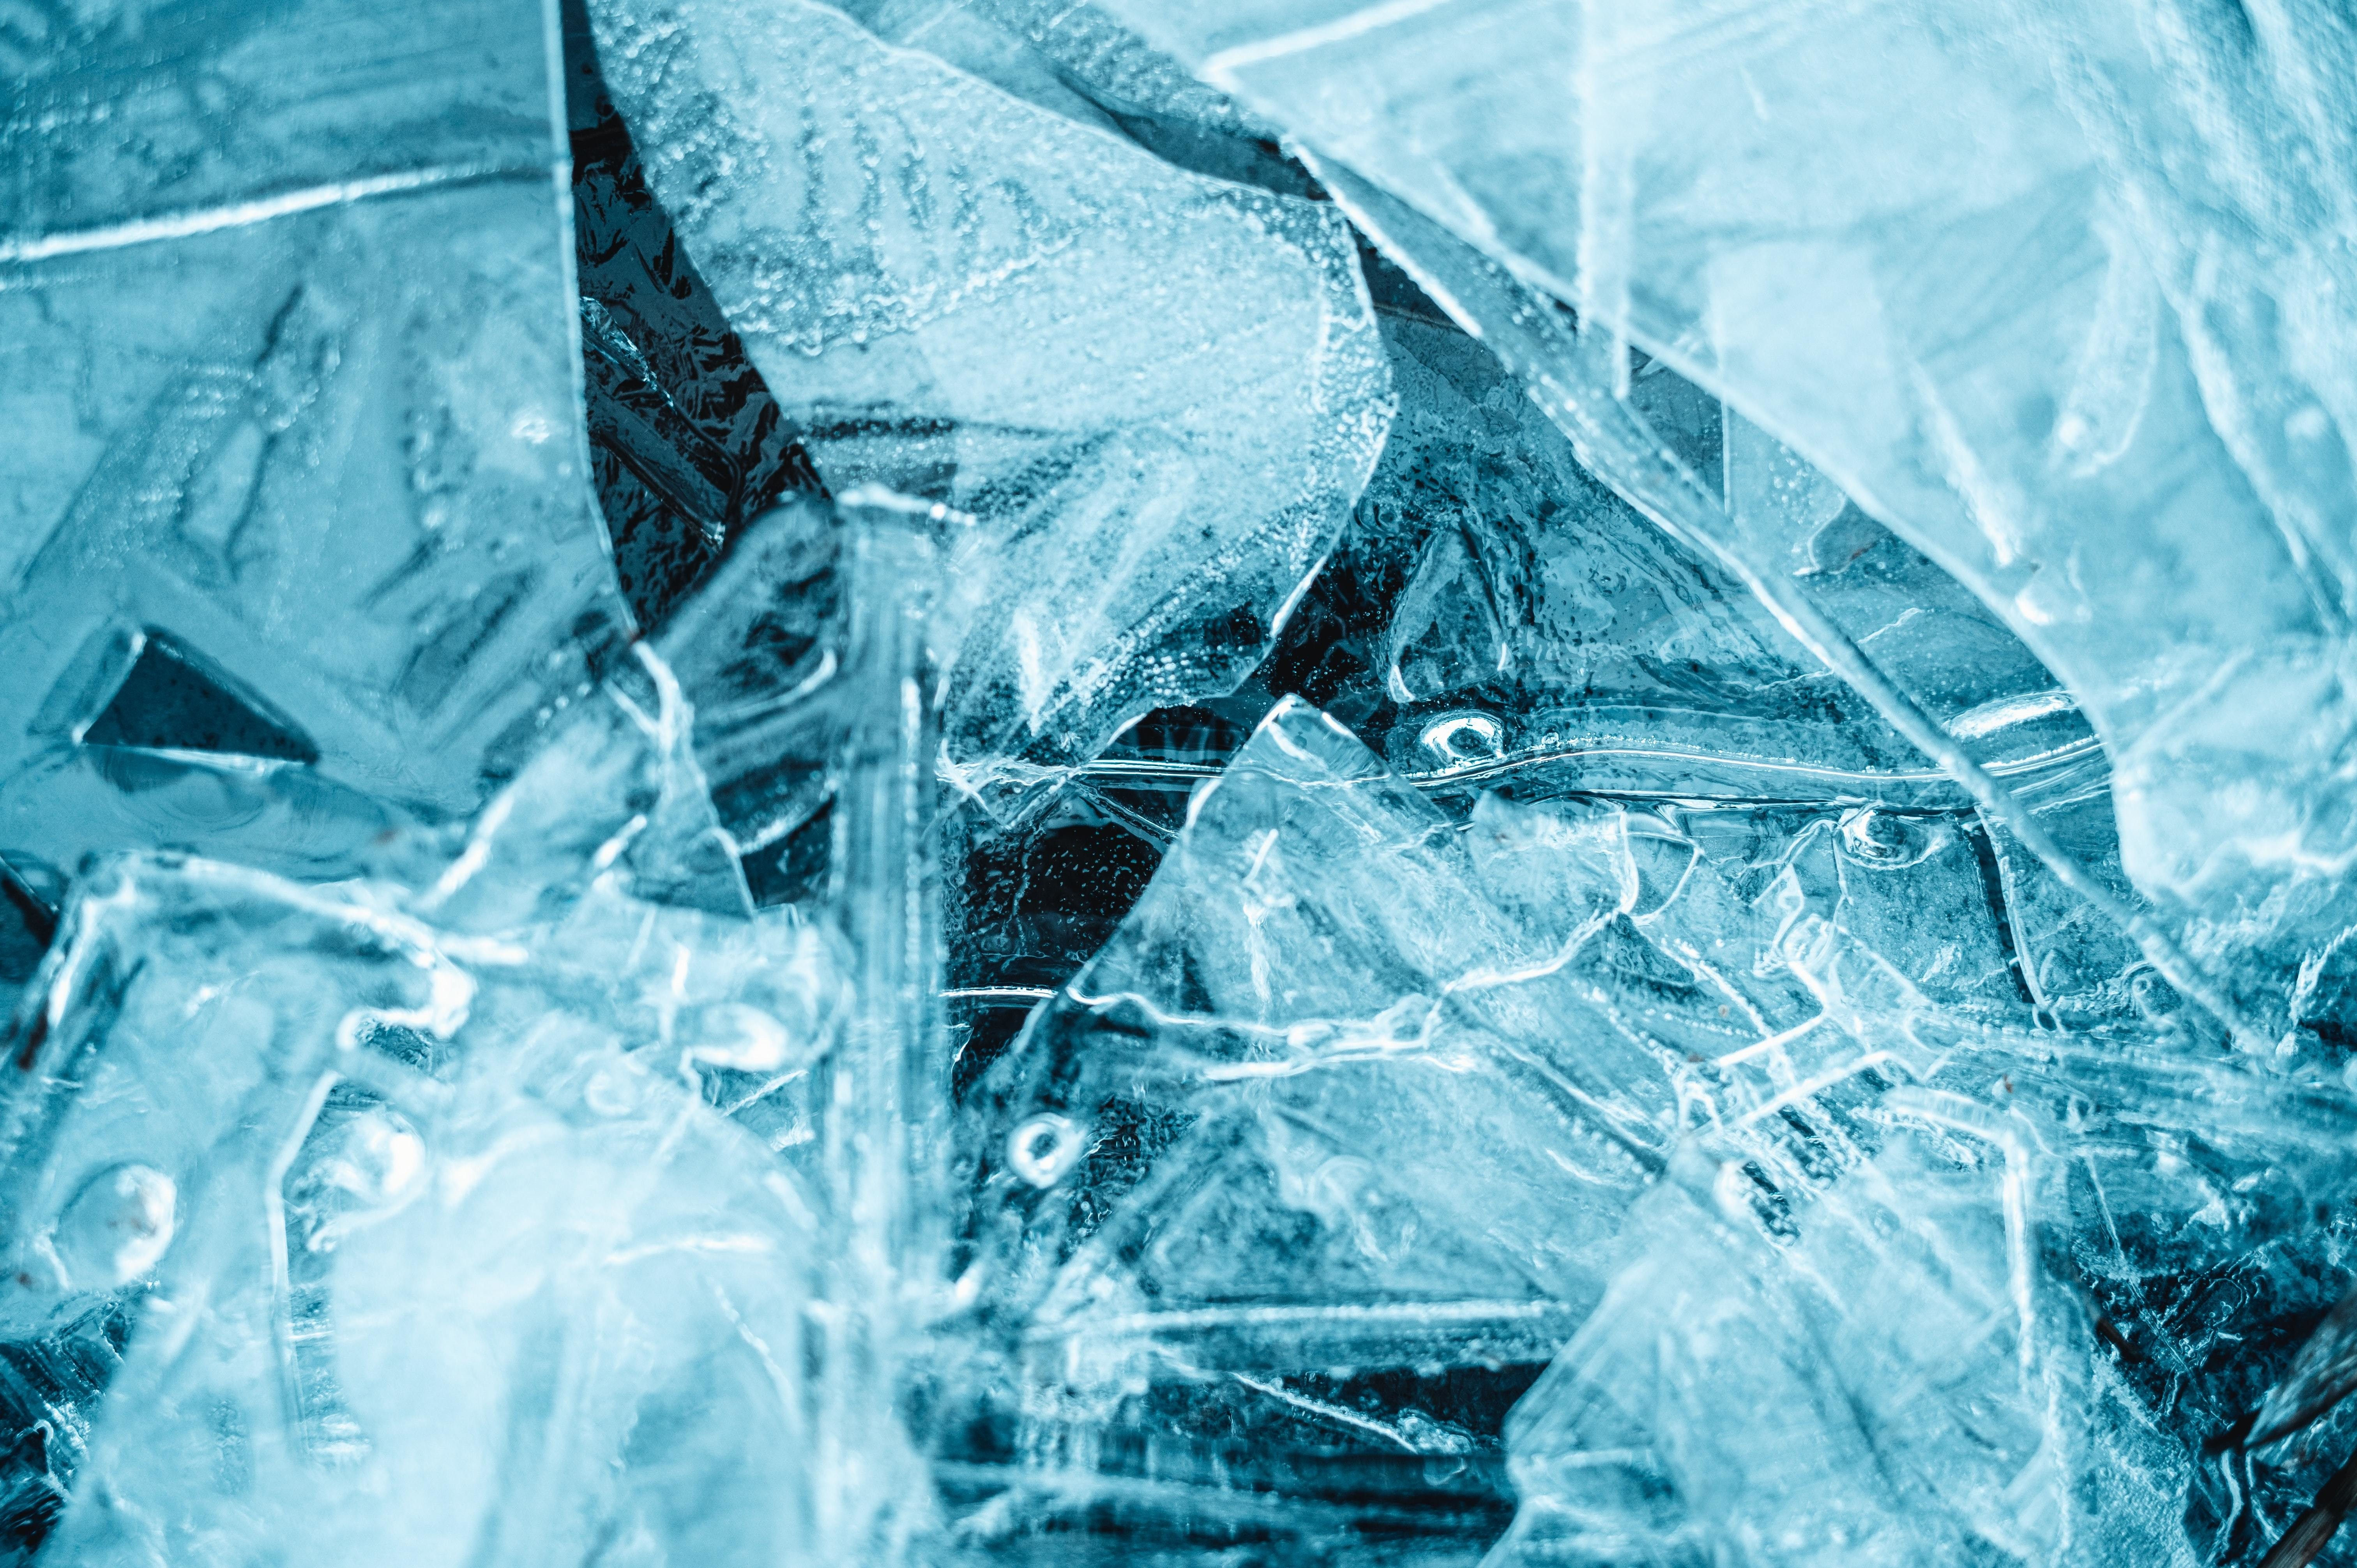 ice, shown here, can store energy and help customers reduce their carbon footprint